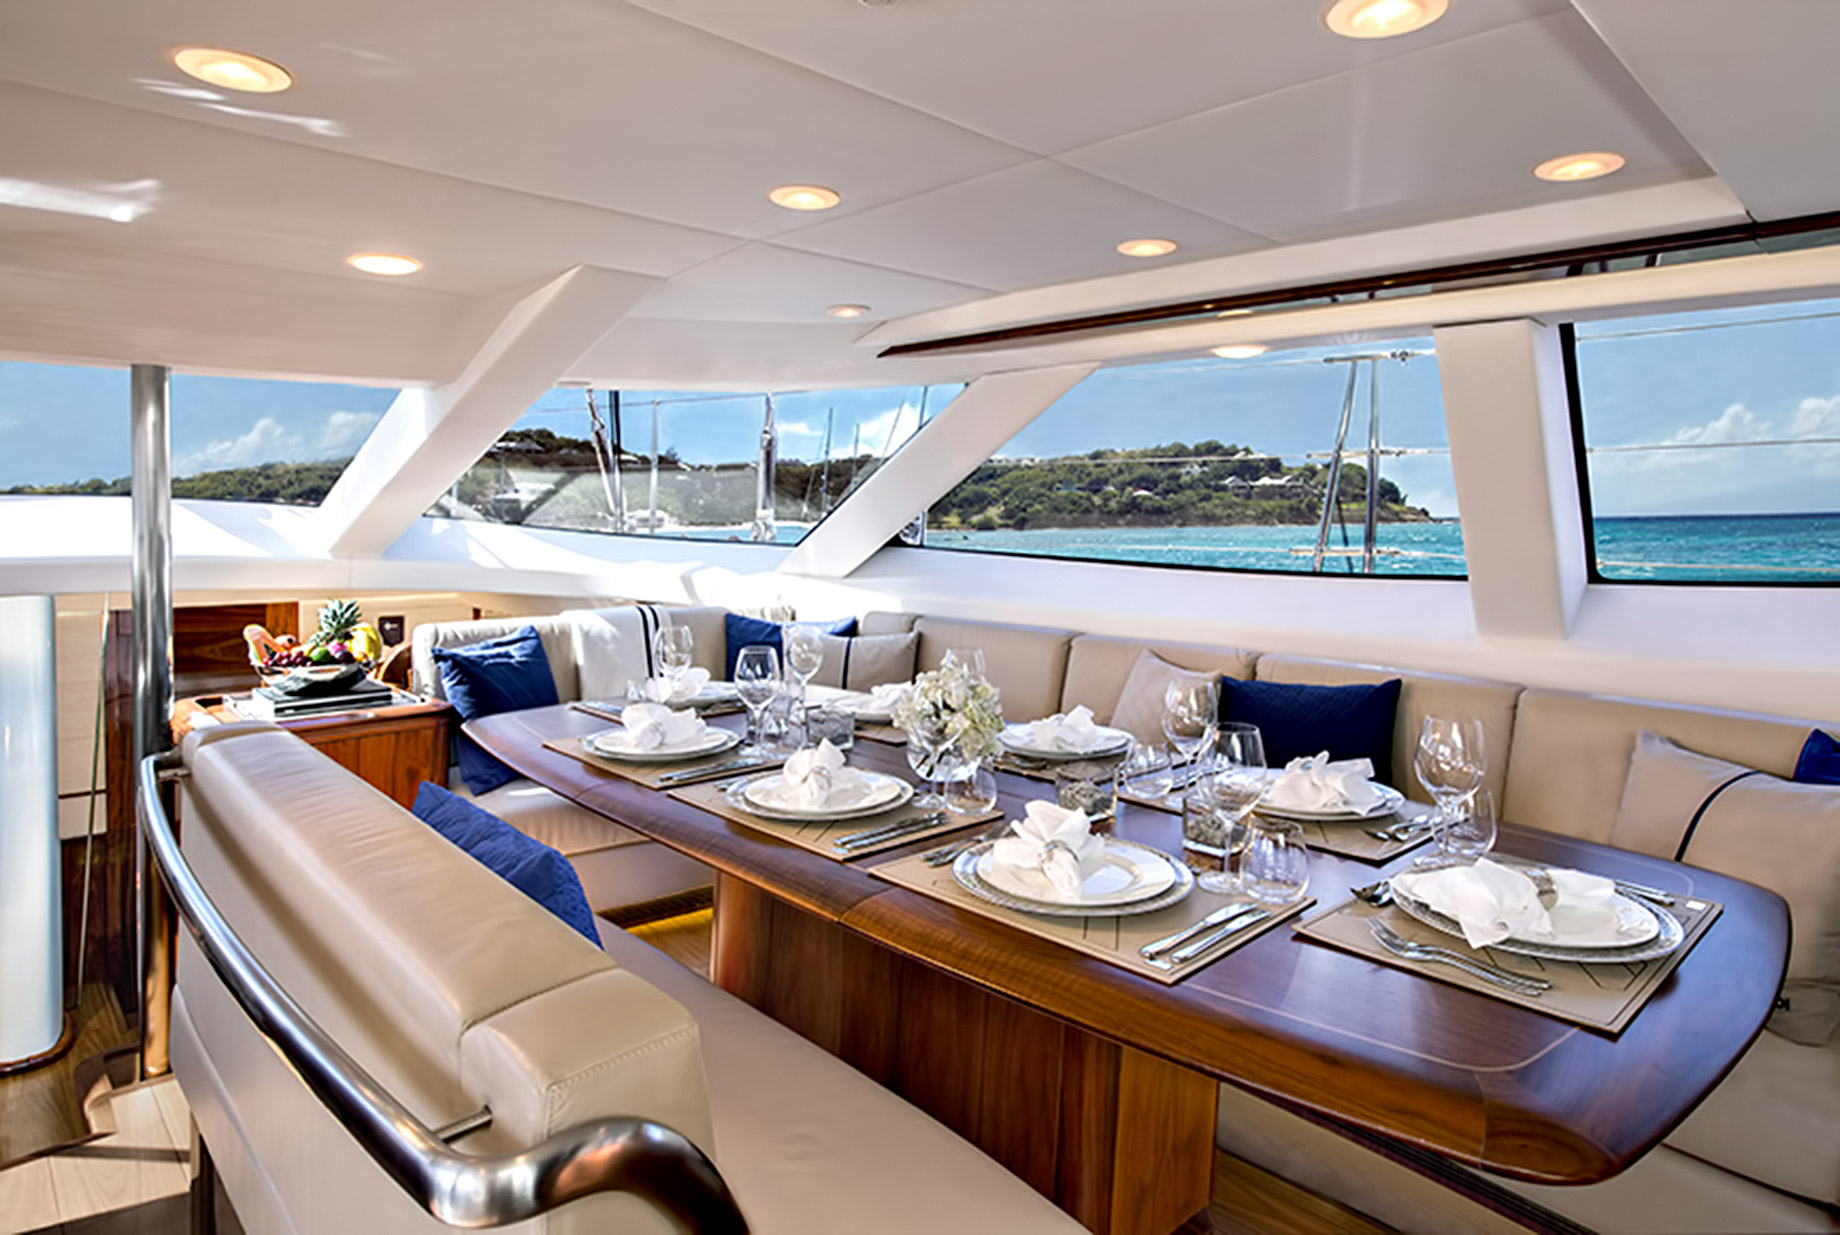 Luxurious Modern Interior – Oyster 100 Penelope – Step Inside A Luxury British Sailing Yacht